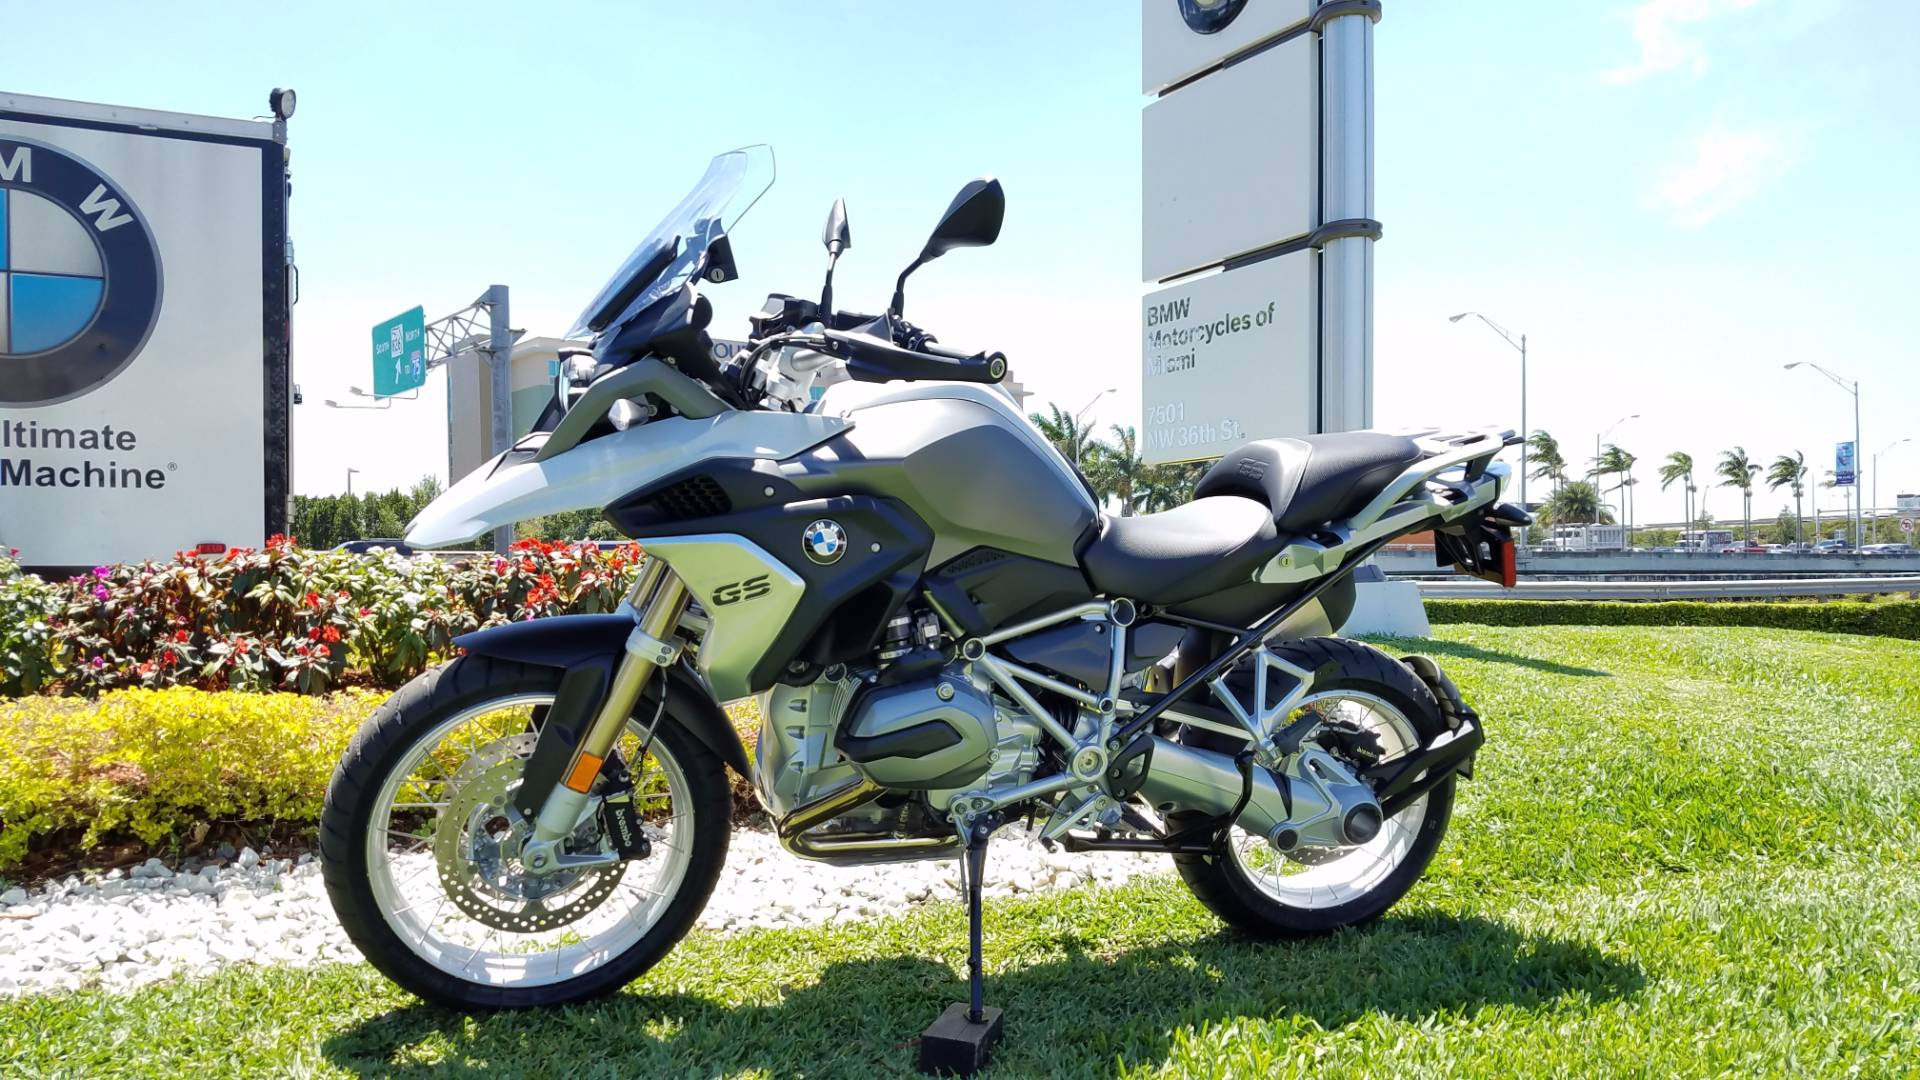 New 2017 BMW R 1200 GS For Sale, BMW R 1200 GS White For Sale, BMW Motorcycle R 1200GS, new BMW 1200GS, New BMW Motorcycle